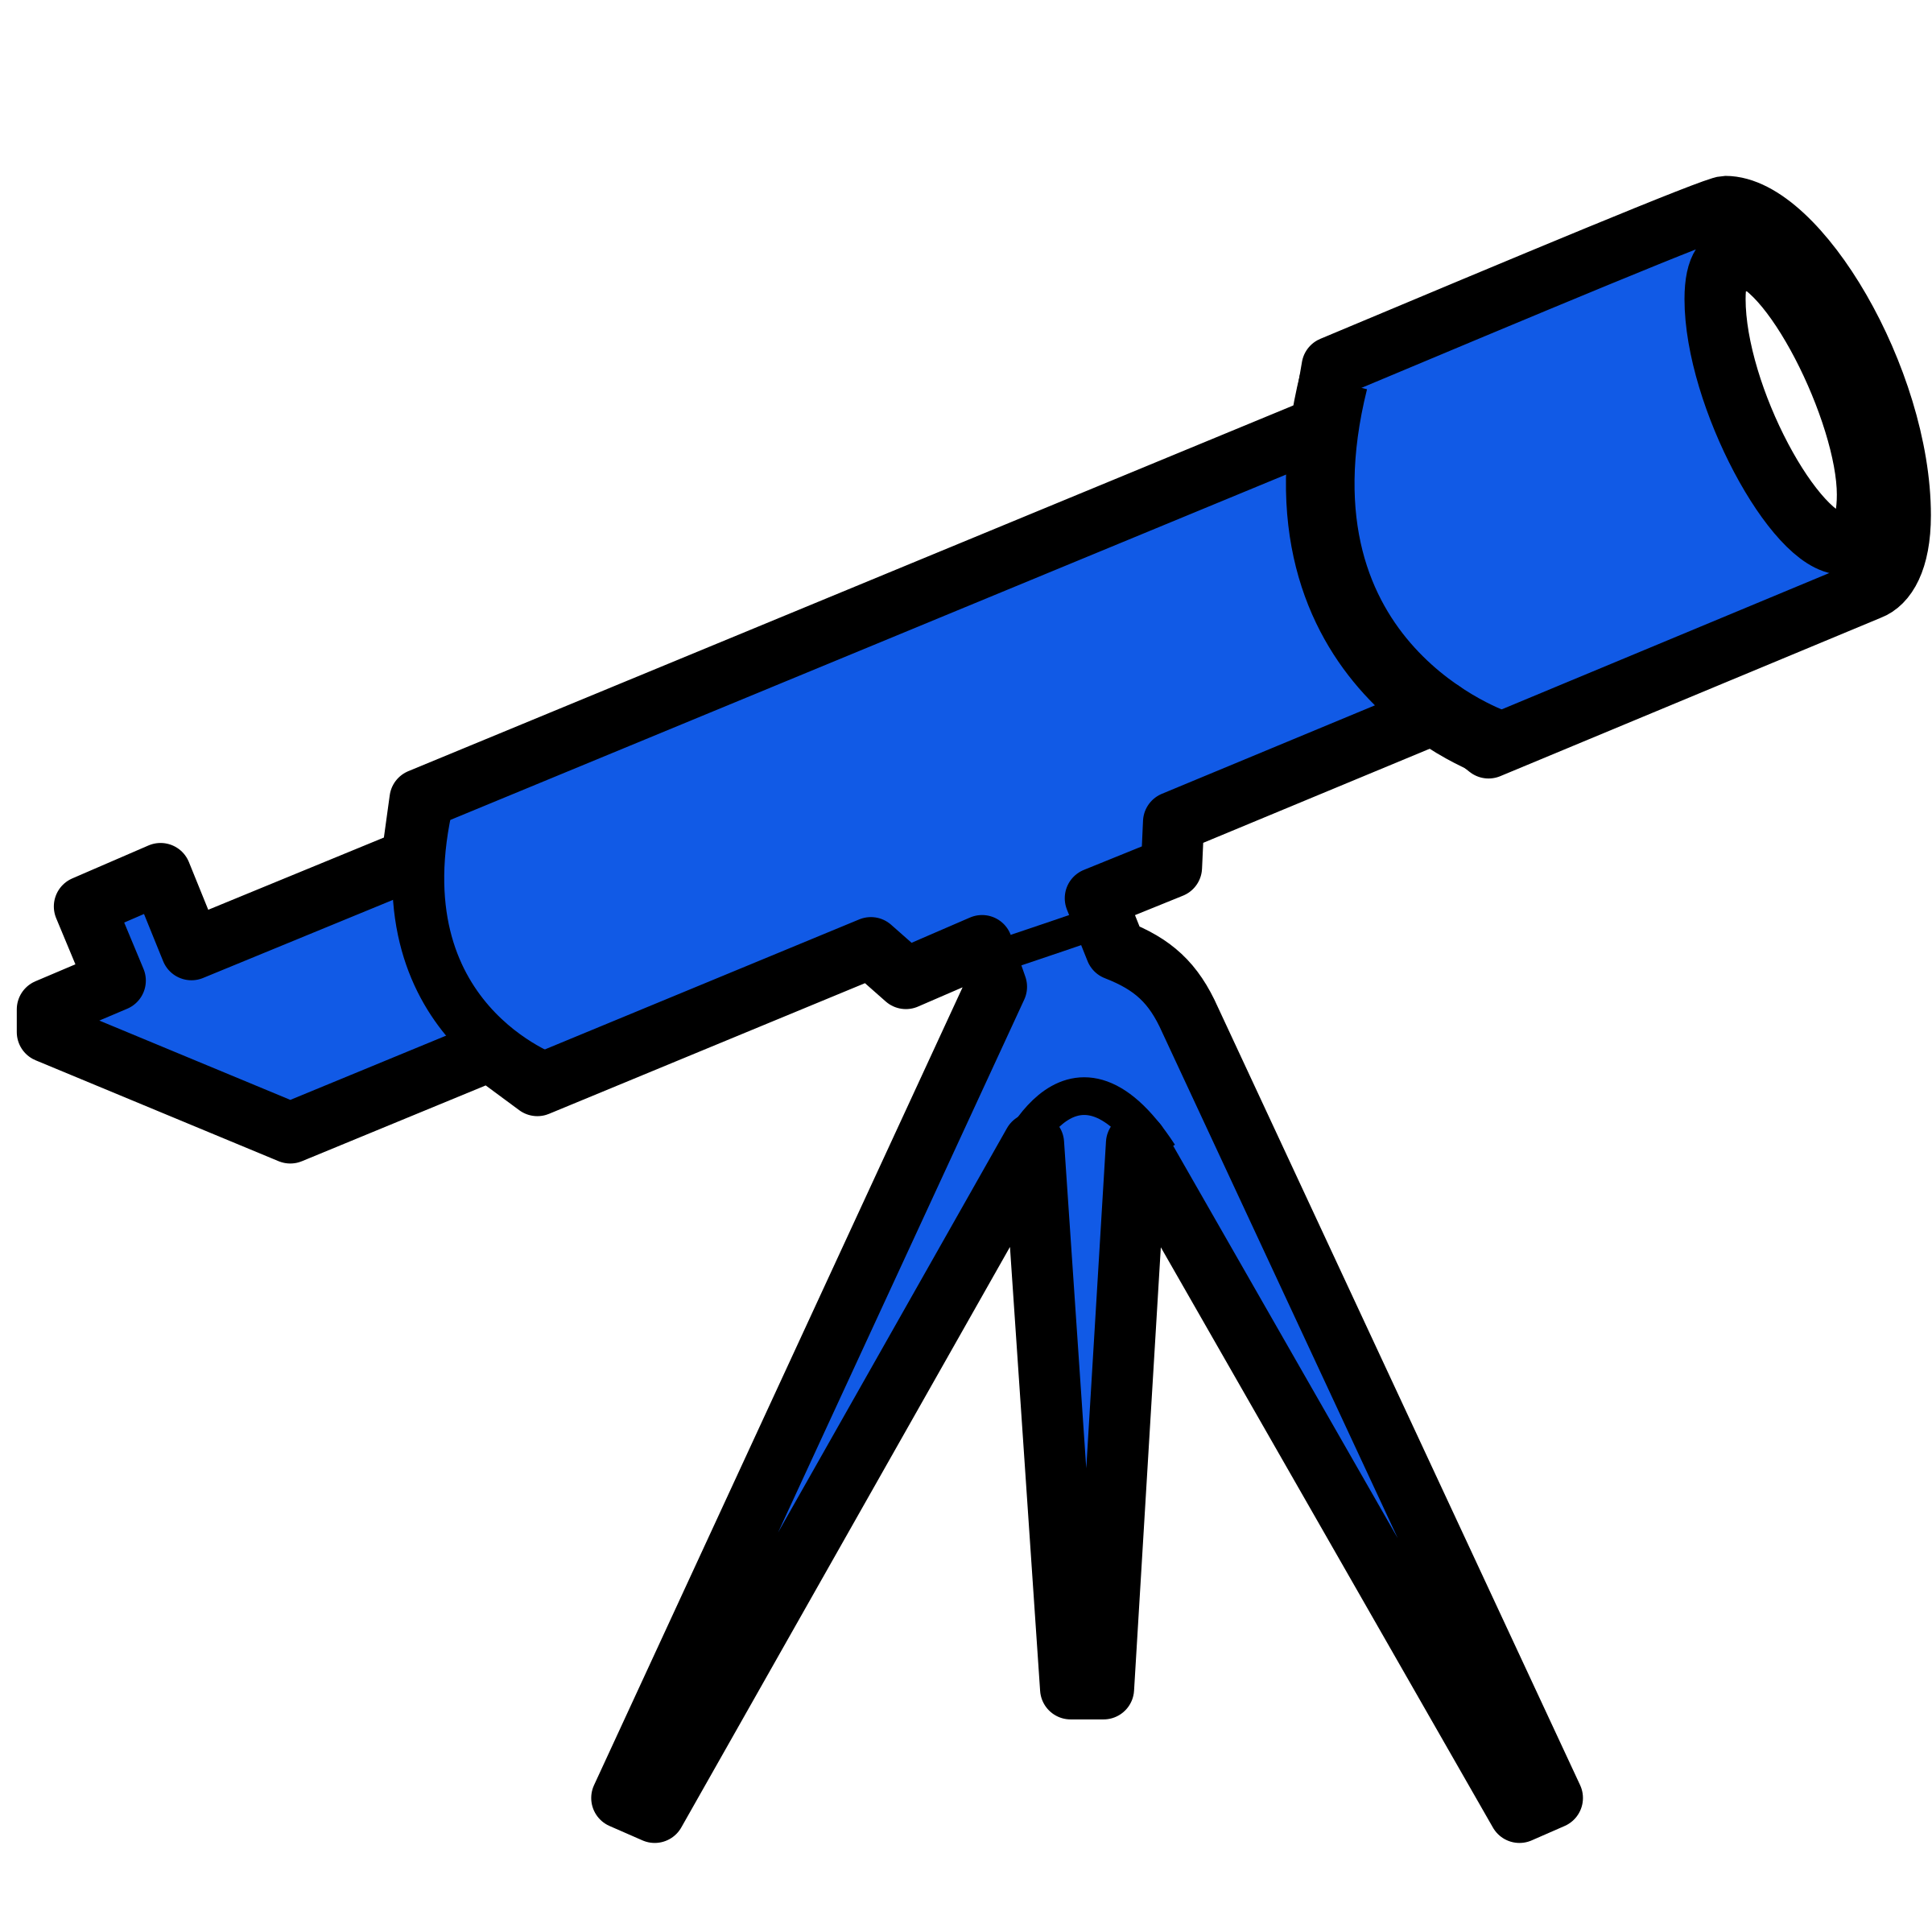 Telescope clipart icon. Blue icons png free